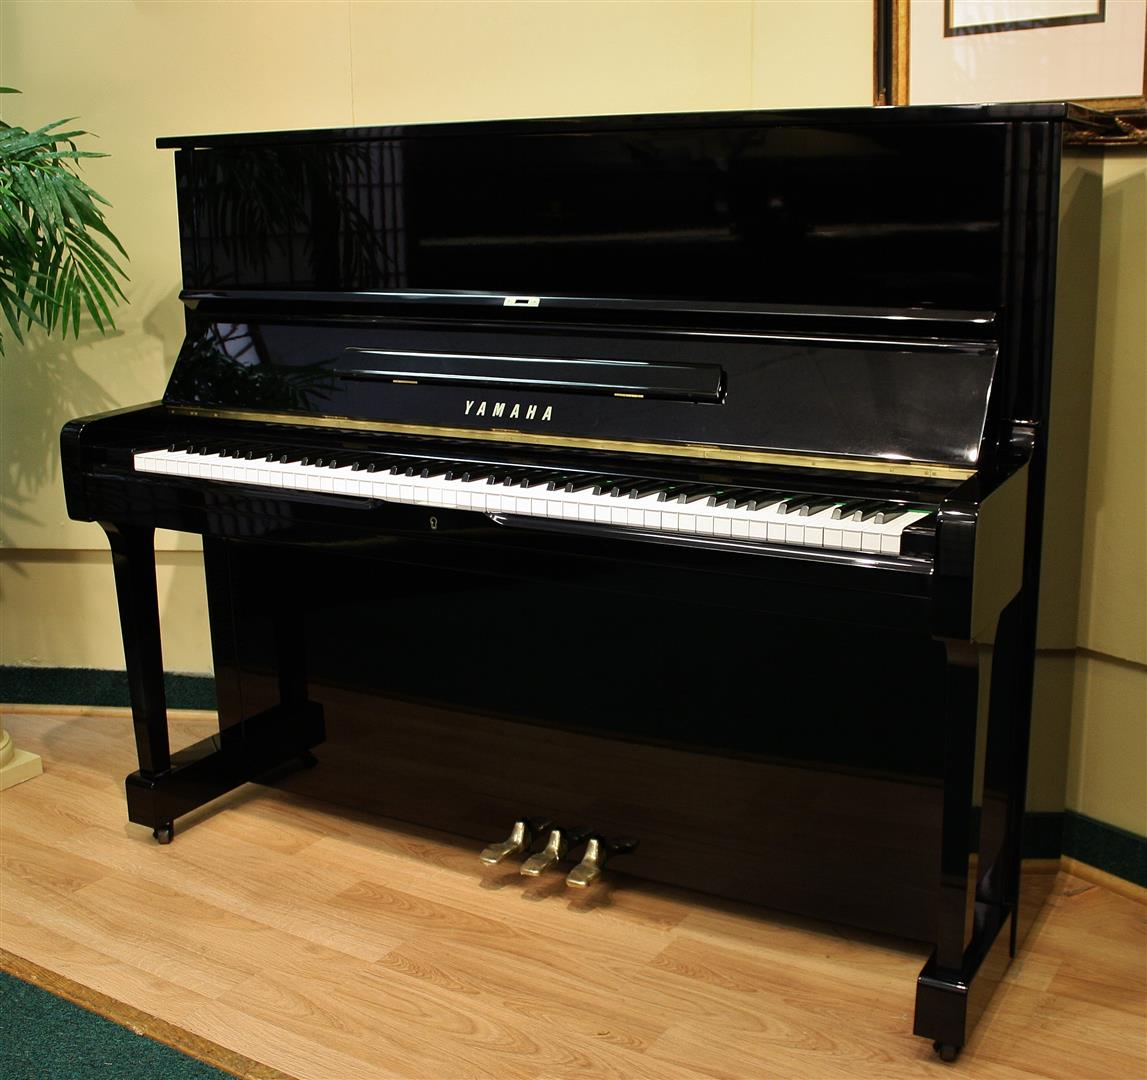 Four star reconditoned yamaha yamaha u1 upright piano 48 for Yamaha piano upright